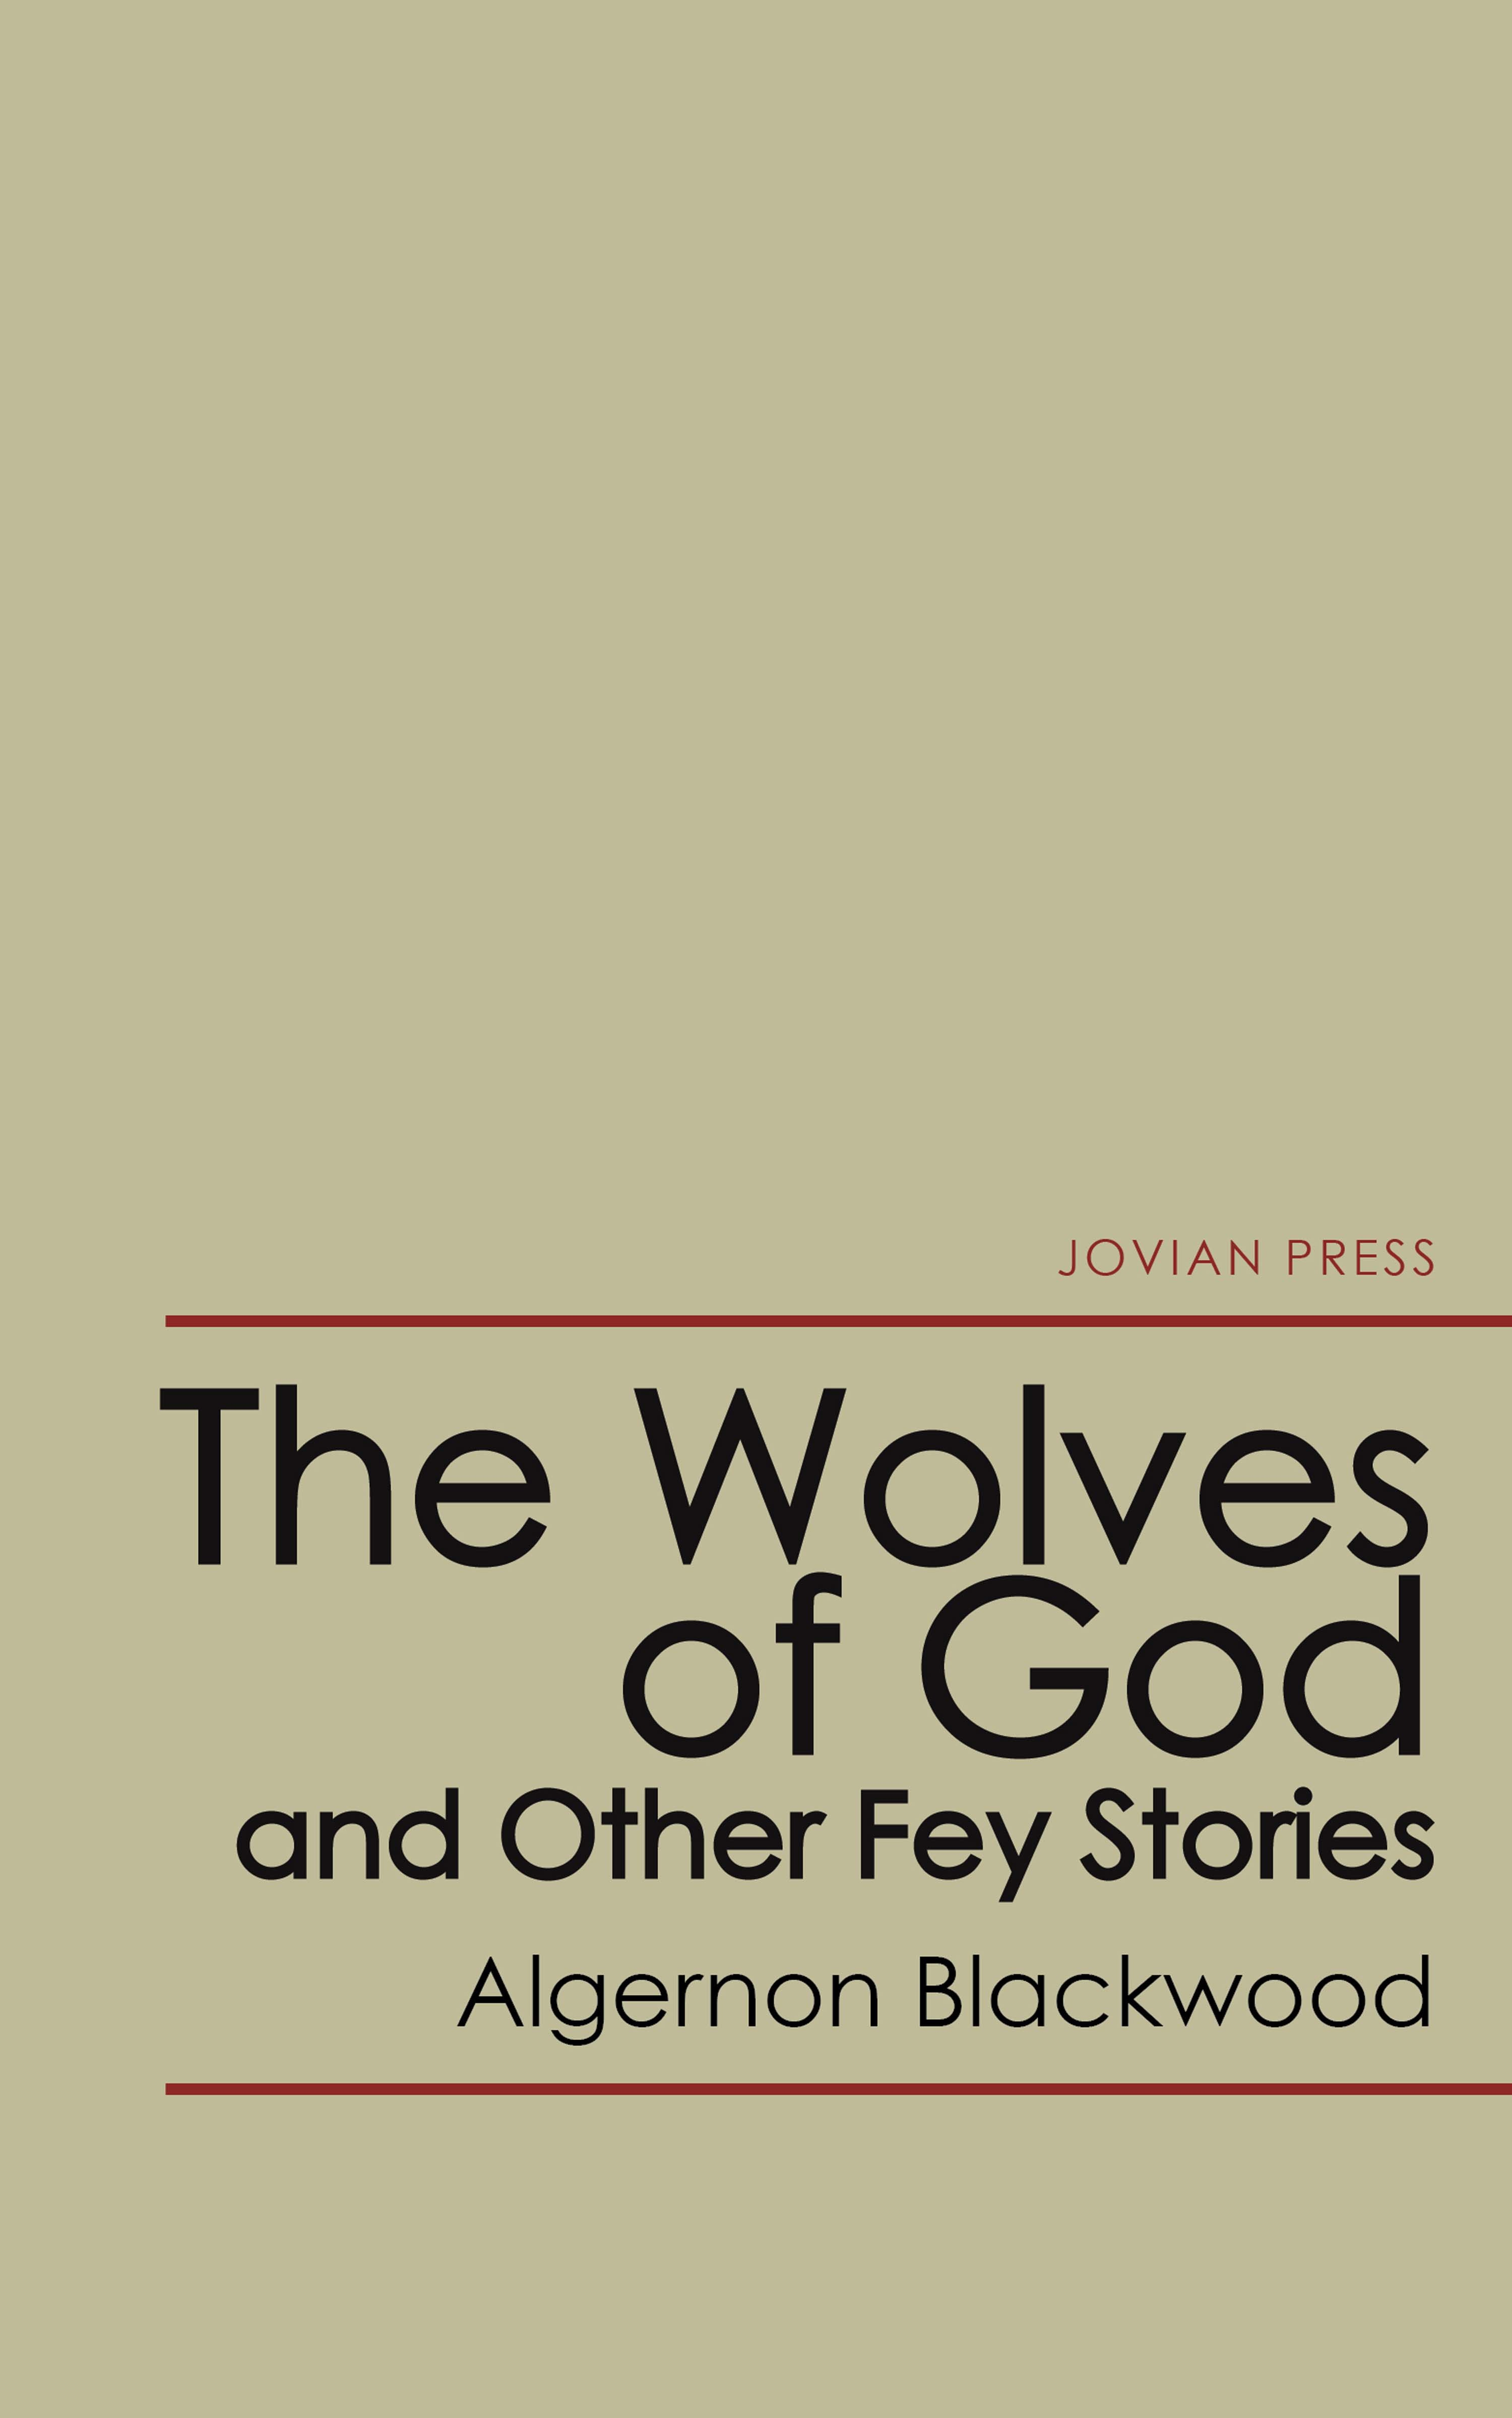 Algernon Blackwood The Wolves of God and Other Fey Stories